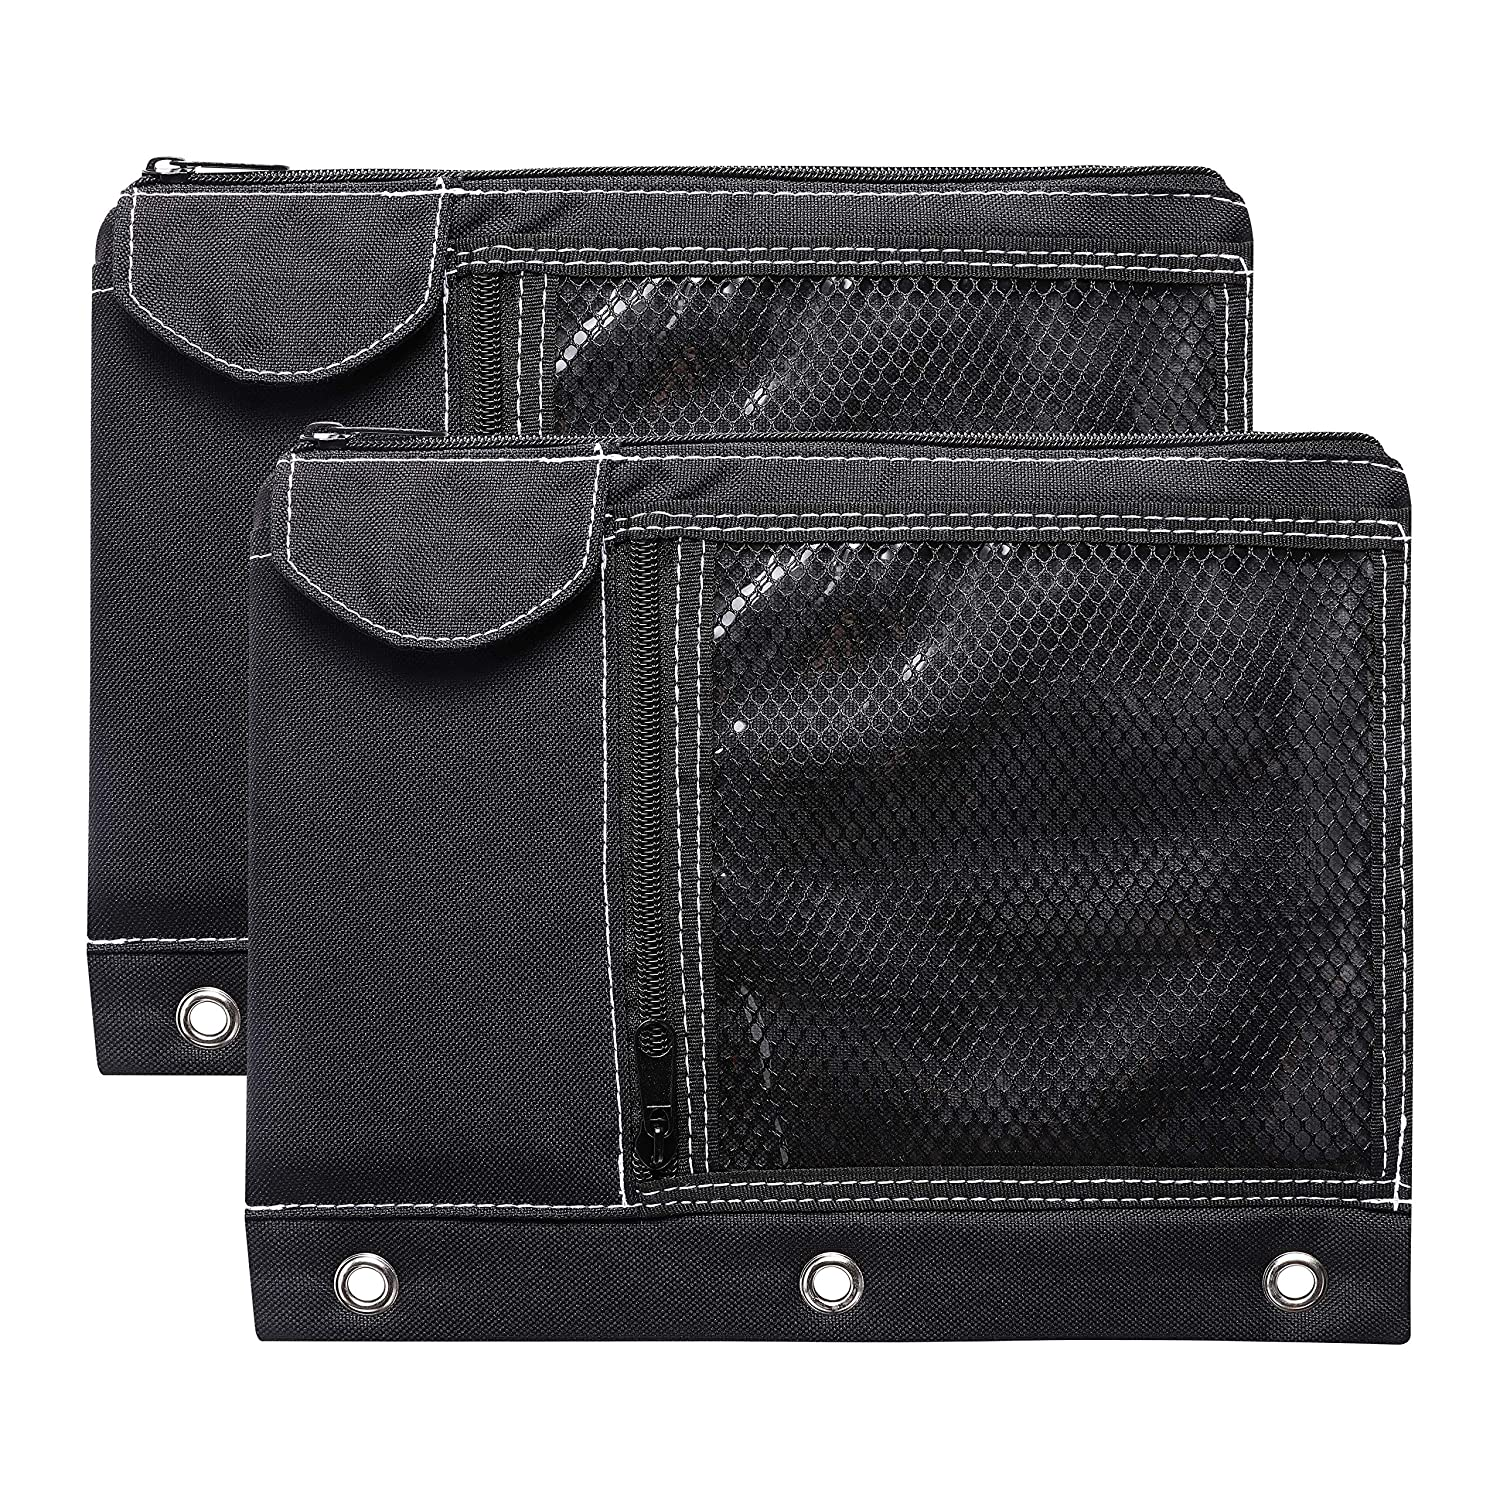 CAXXA 2 Pack 3 Ring Binder Pouch with Mesh Window and Zipper Black